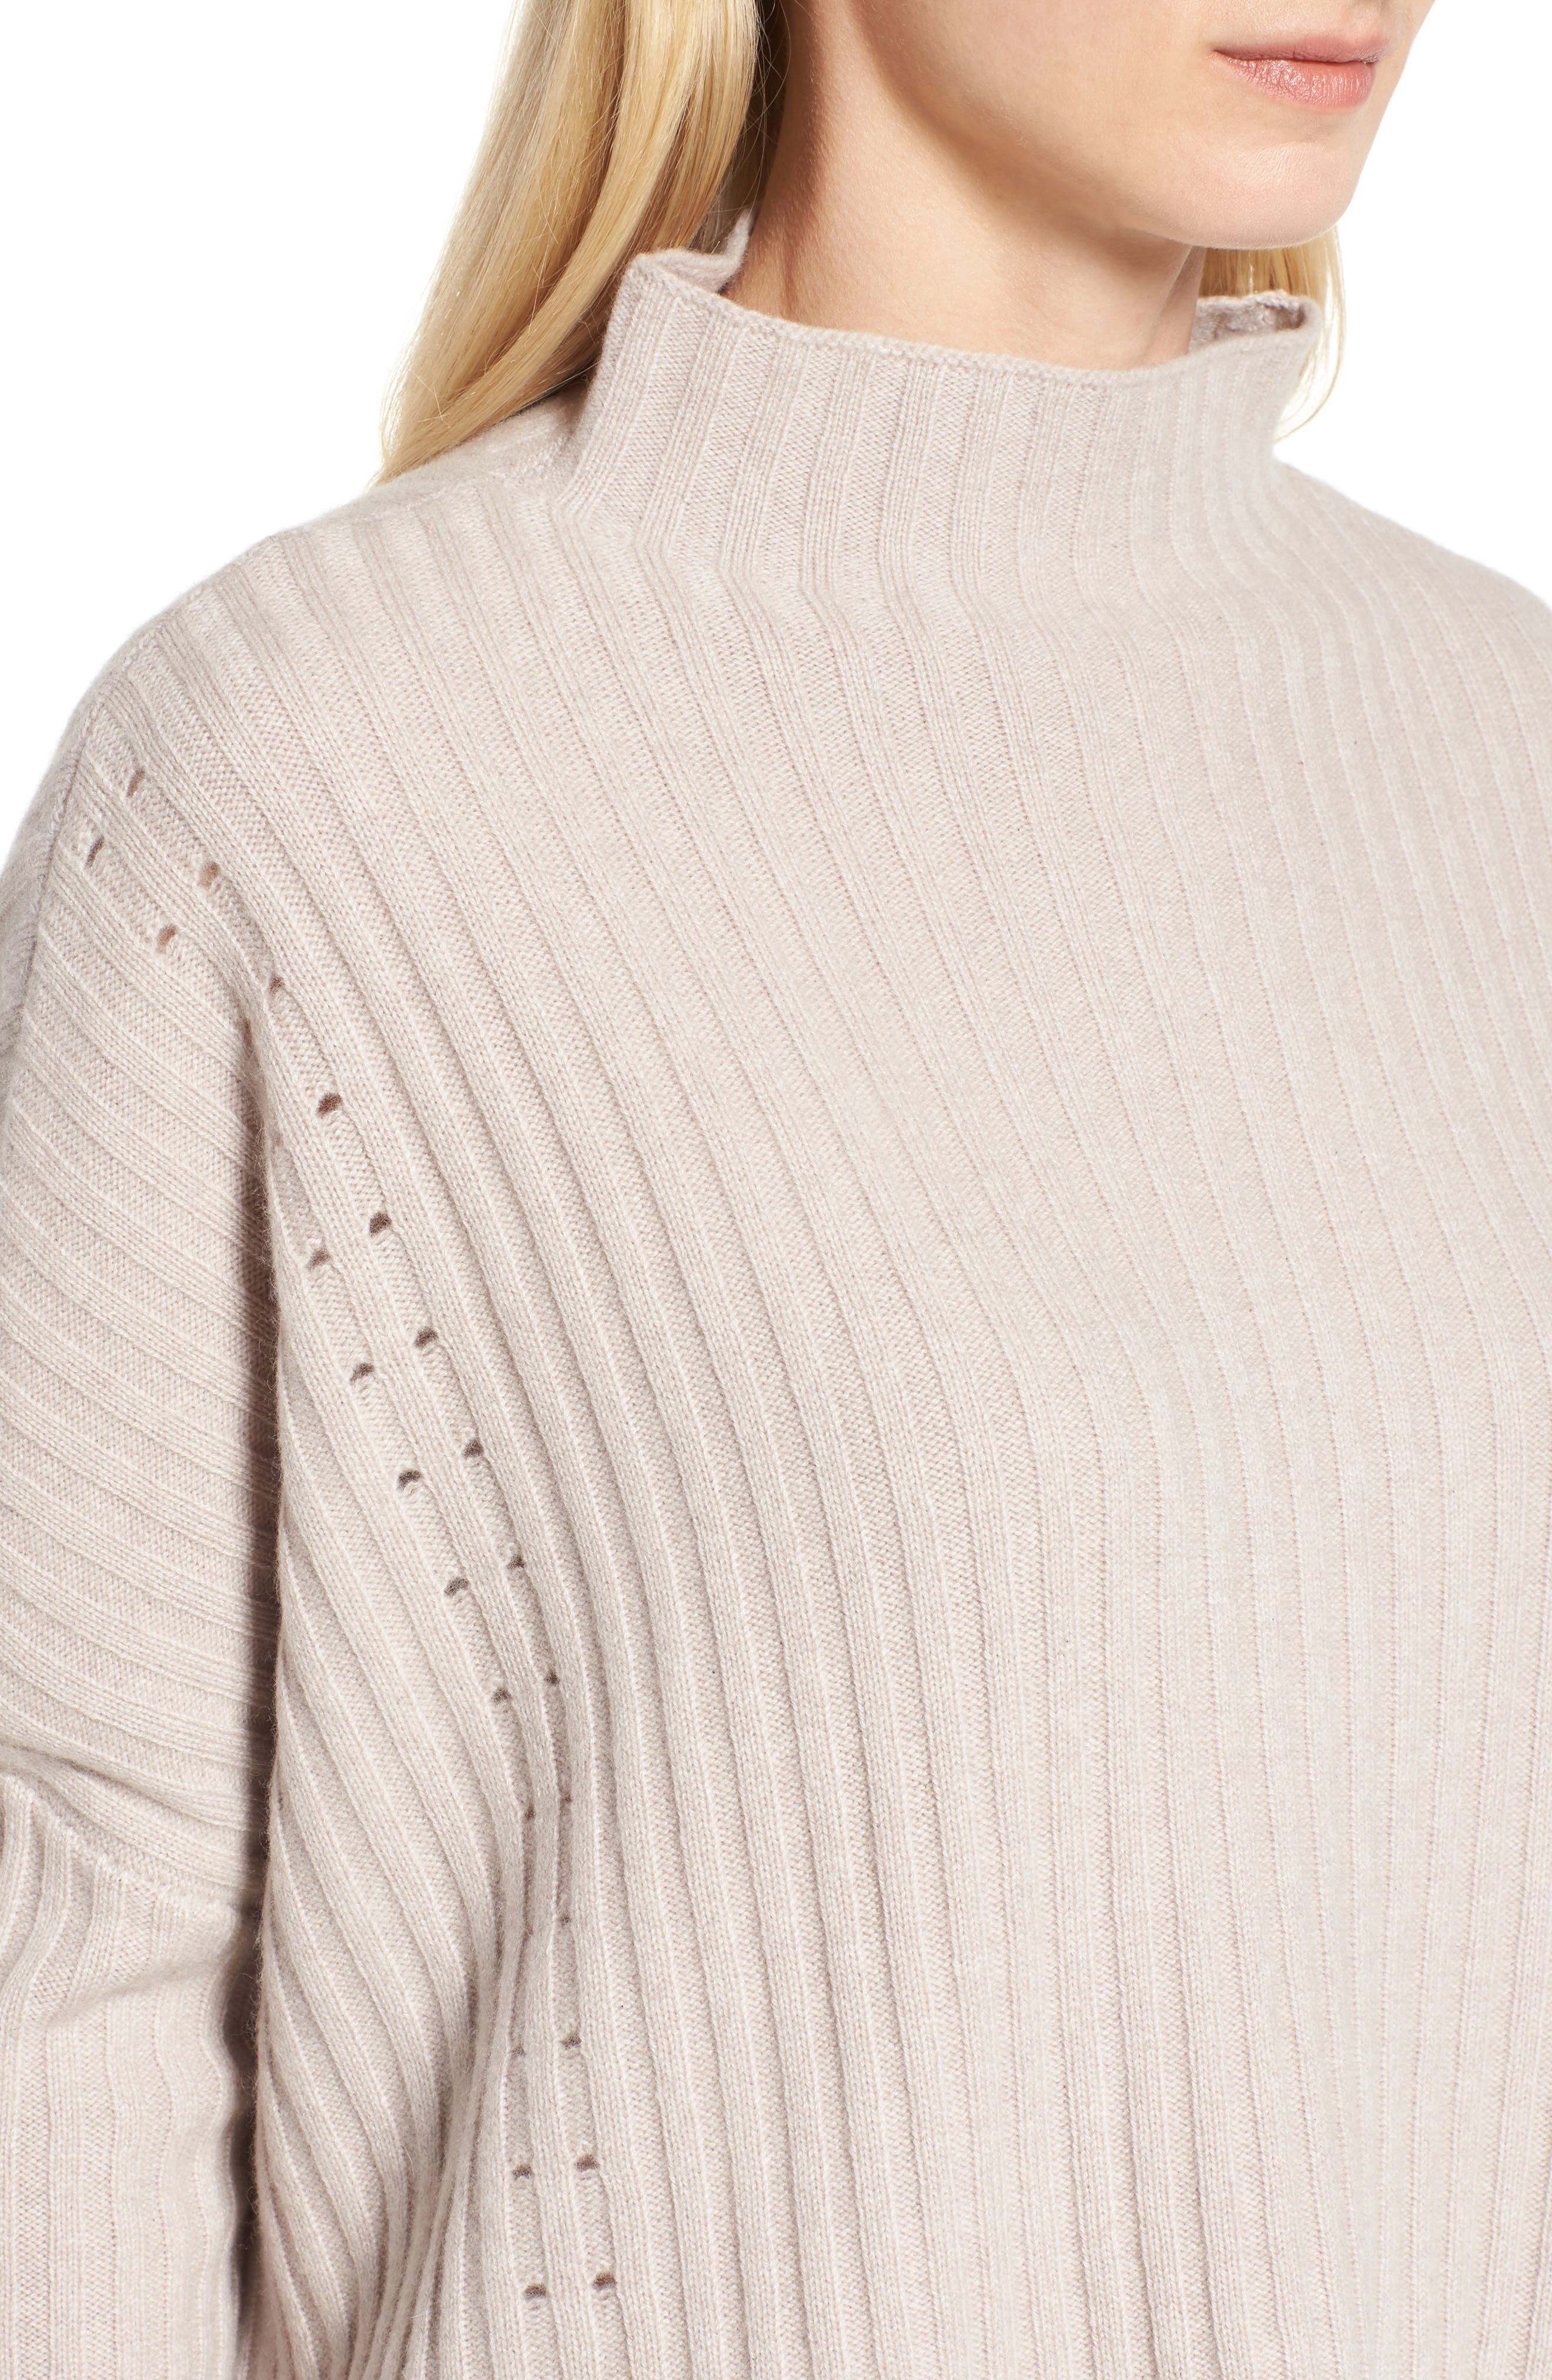 Boxy Ribbed Cashmere Sweater,                             Alternate thumbnail 4, color,                             Beige Pumice Heather